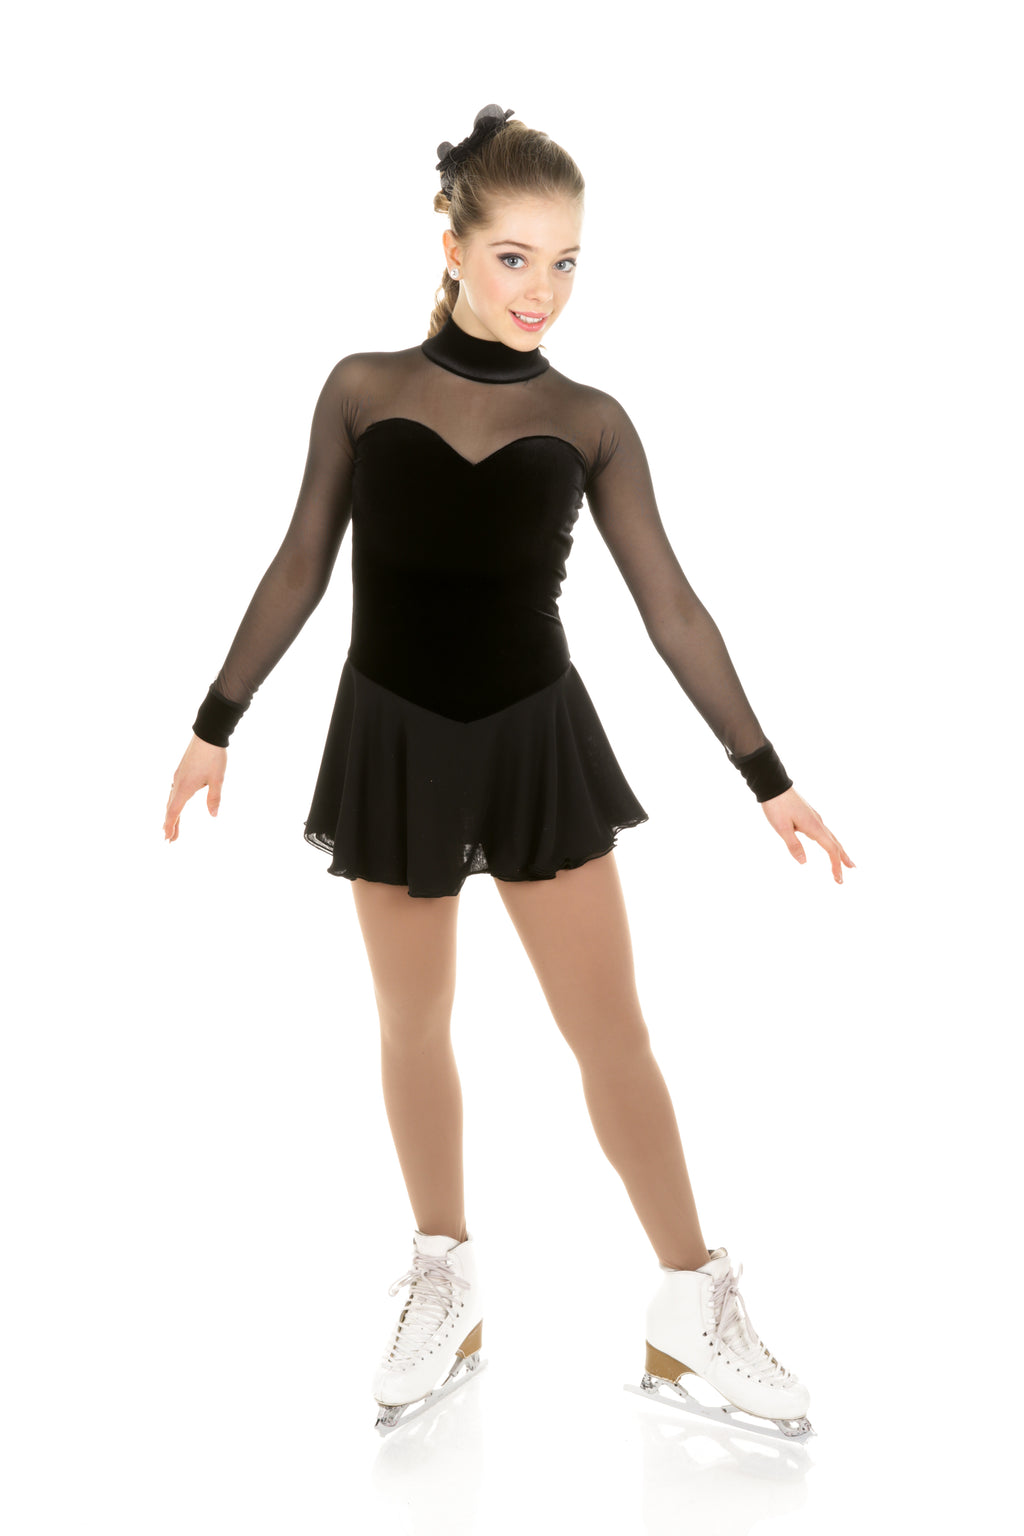 Classic black dress - House of Skates